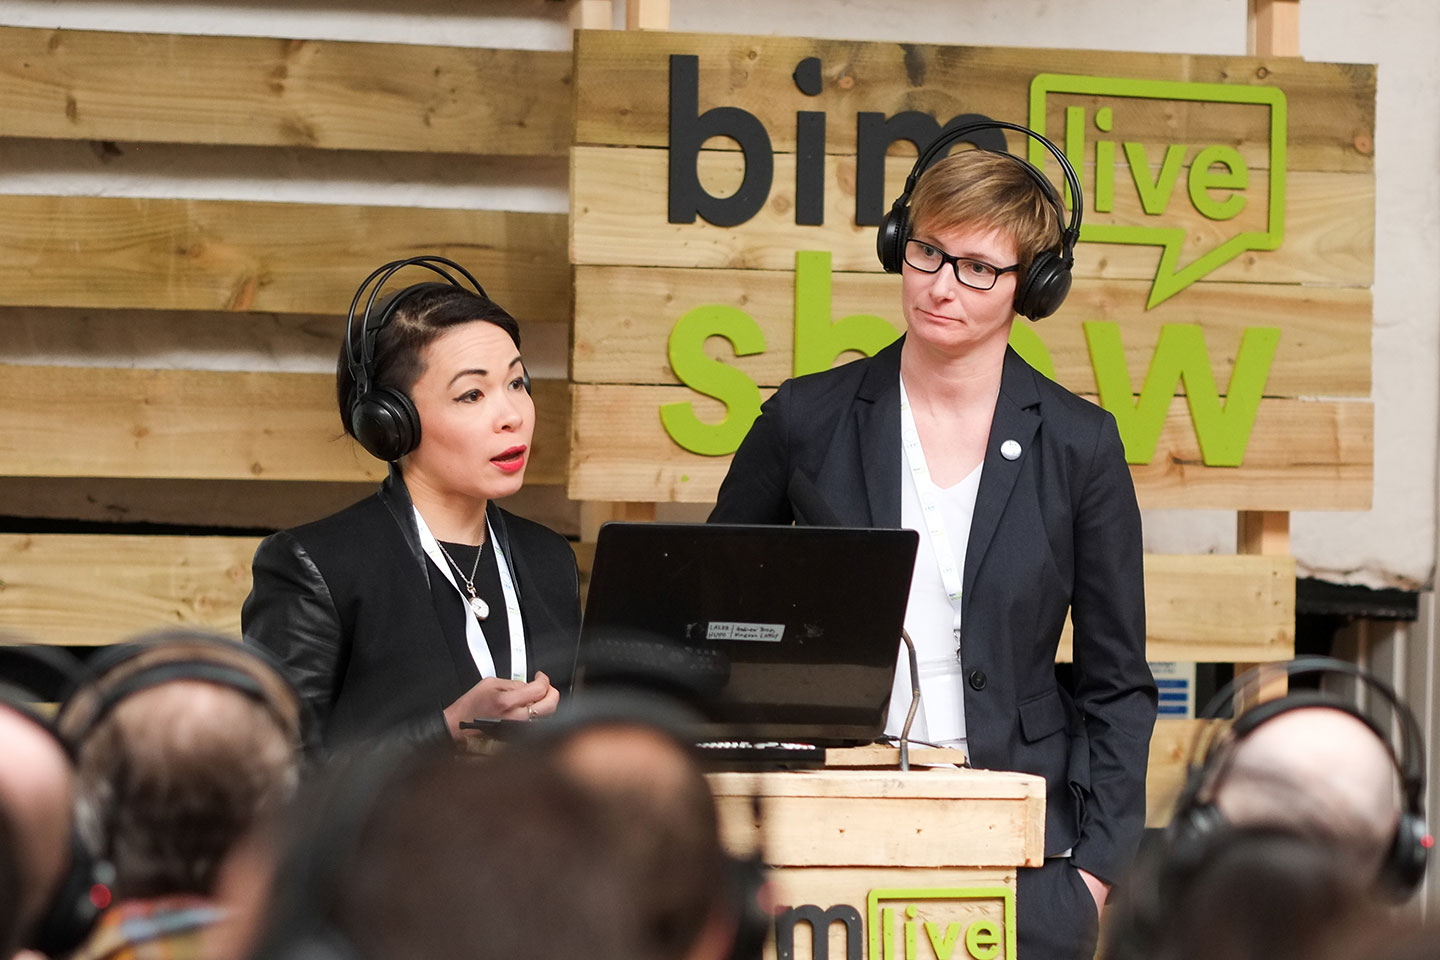 BIM Show Live - May Winfield and Sarah Rock